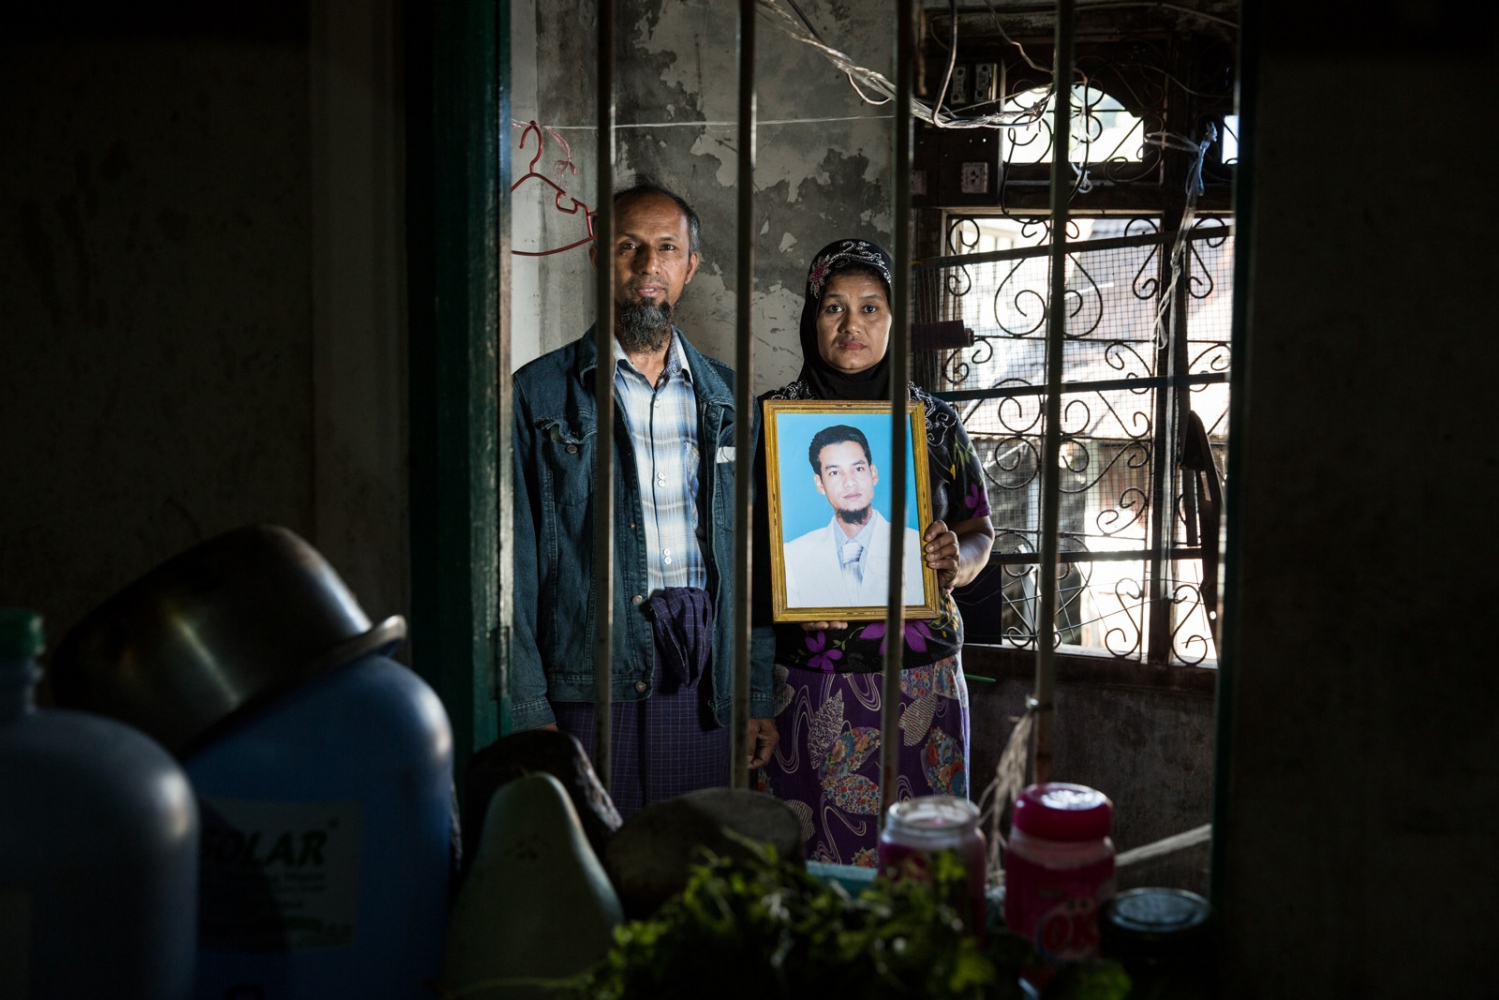 The father and mother of Naung Naung hold a portrait of their arbitrarily detained son. Myanmar military intelligence arrested Naung Naung, 26, while he was driving a taxi for his friend's wedding in Kunhein, Shan State on August 4, 2014.  The Taunggyi District Court sentenced him in a trial that failed to meet fair trial standards to 14 years' imprisonment with hard labor under sections 5(J) and 5(L) of the 1950 Emergency Provisions Act.  In October 2016, the Myanmar government repealed the notoriously controversial 1950 Emergency Provisions Act, yet Naung Naung and others remain detained under the now defunct Act.